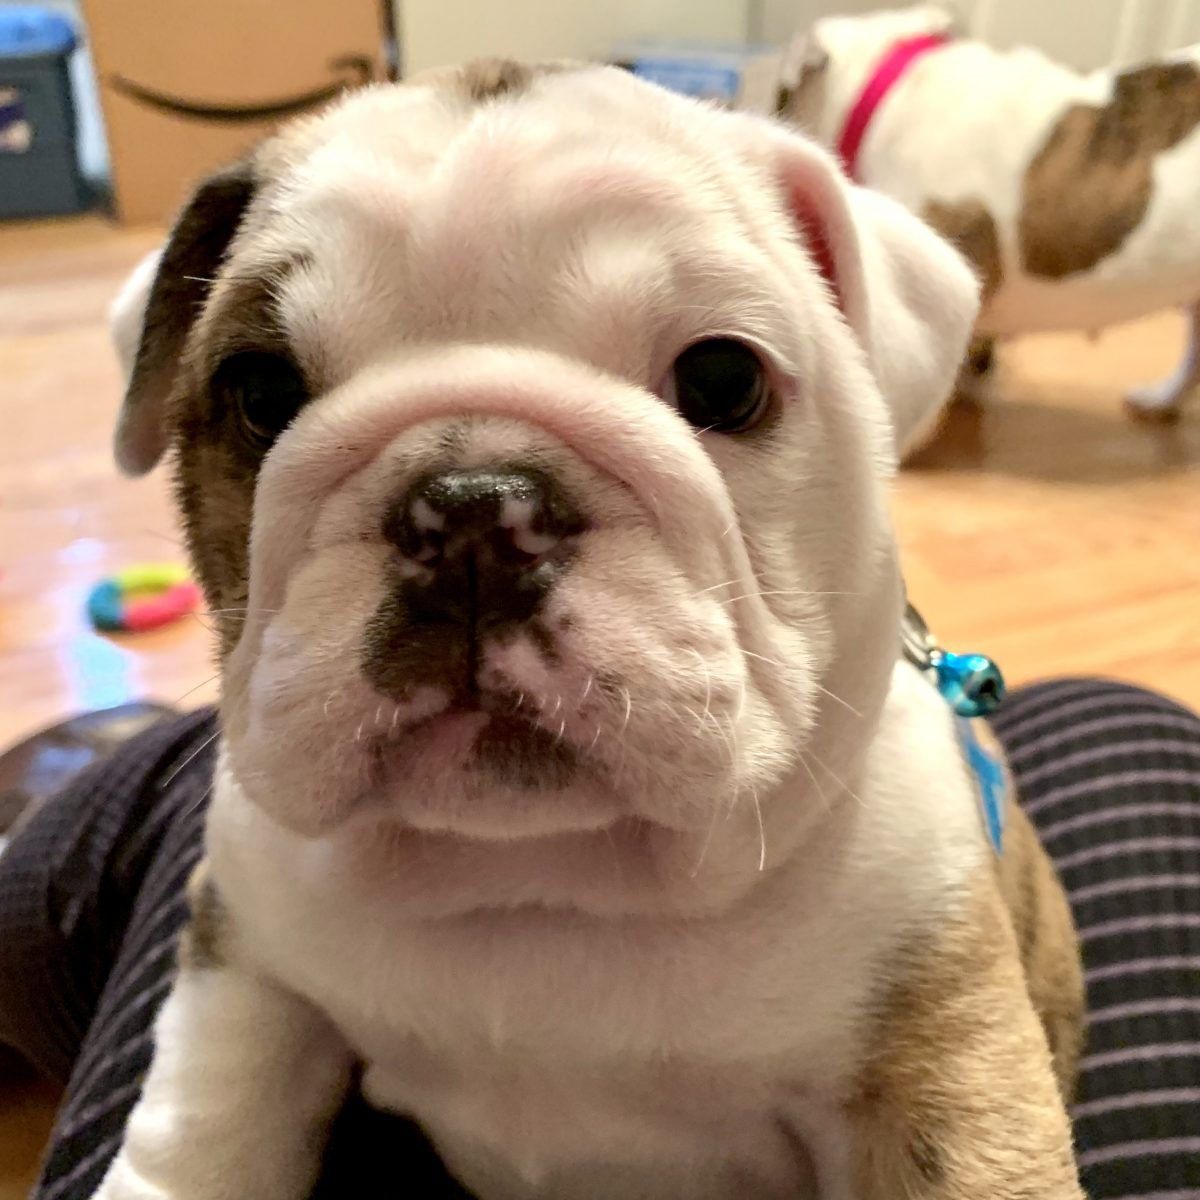 Continent Old English Bulldog Puppy For Sale In Huntersville North Carolina Vip Puppies In 2020 Bulldog Puppies Bulldog Puppies For Sale English Bulldog Puppies